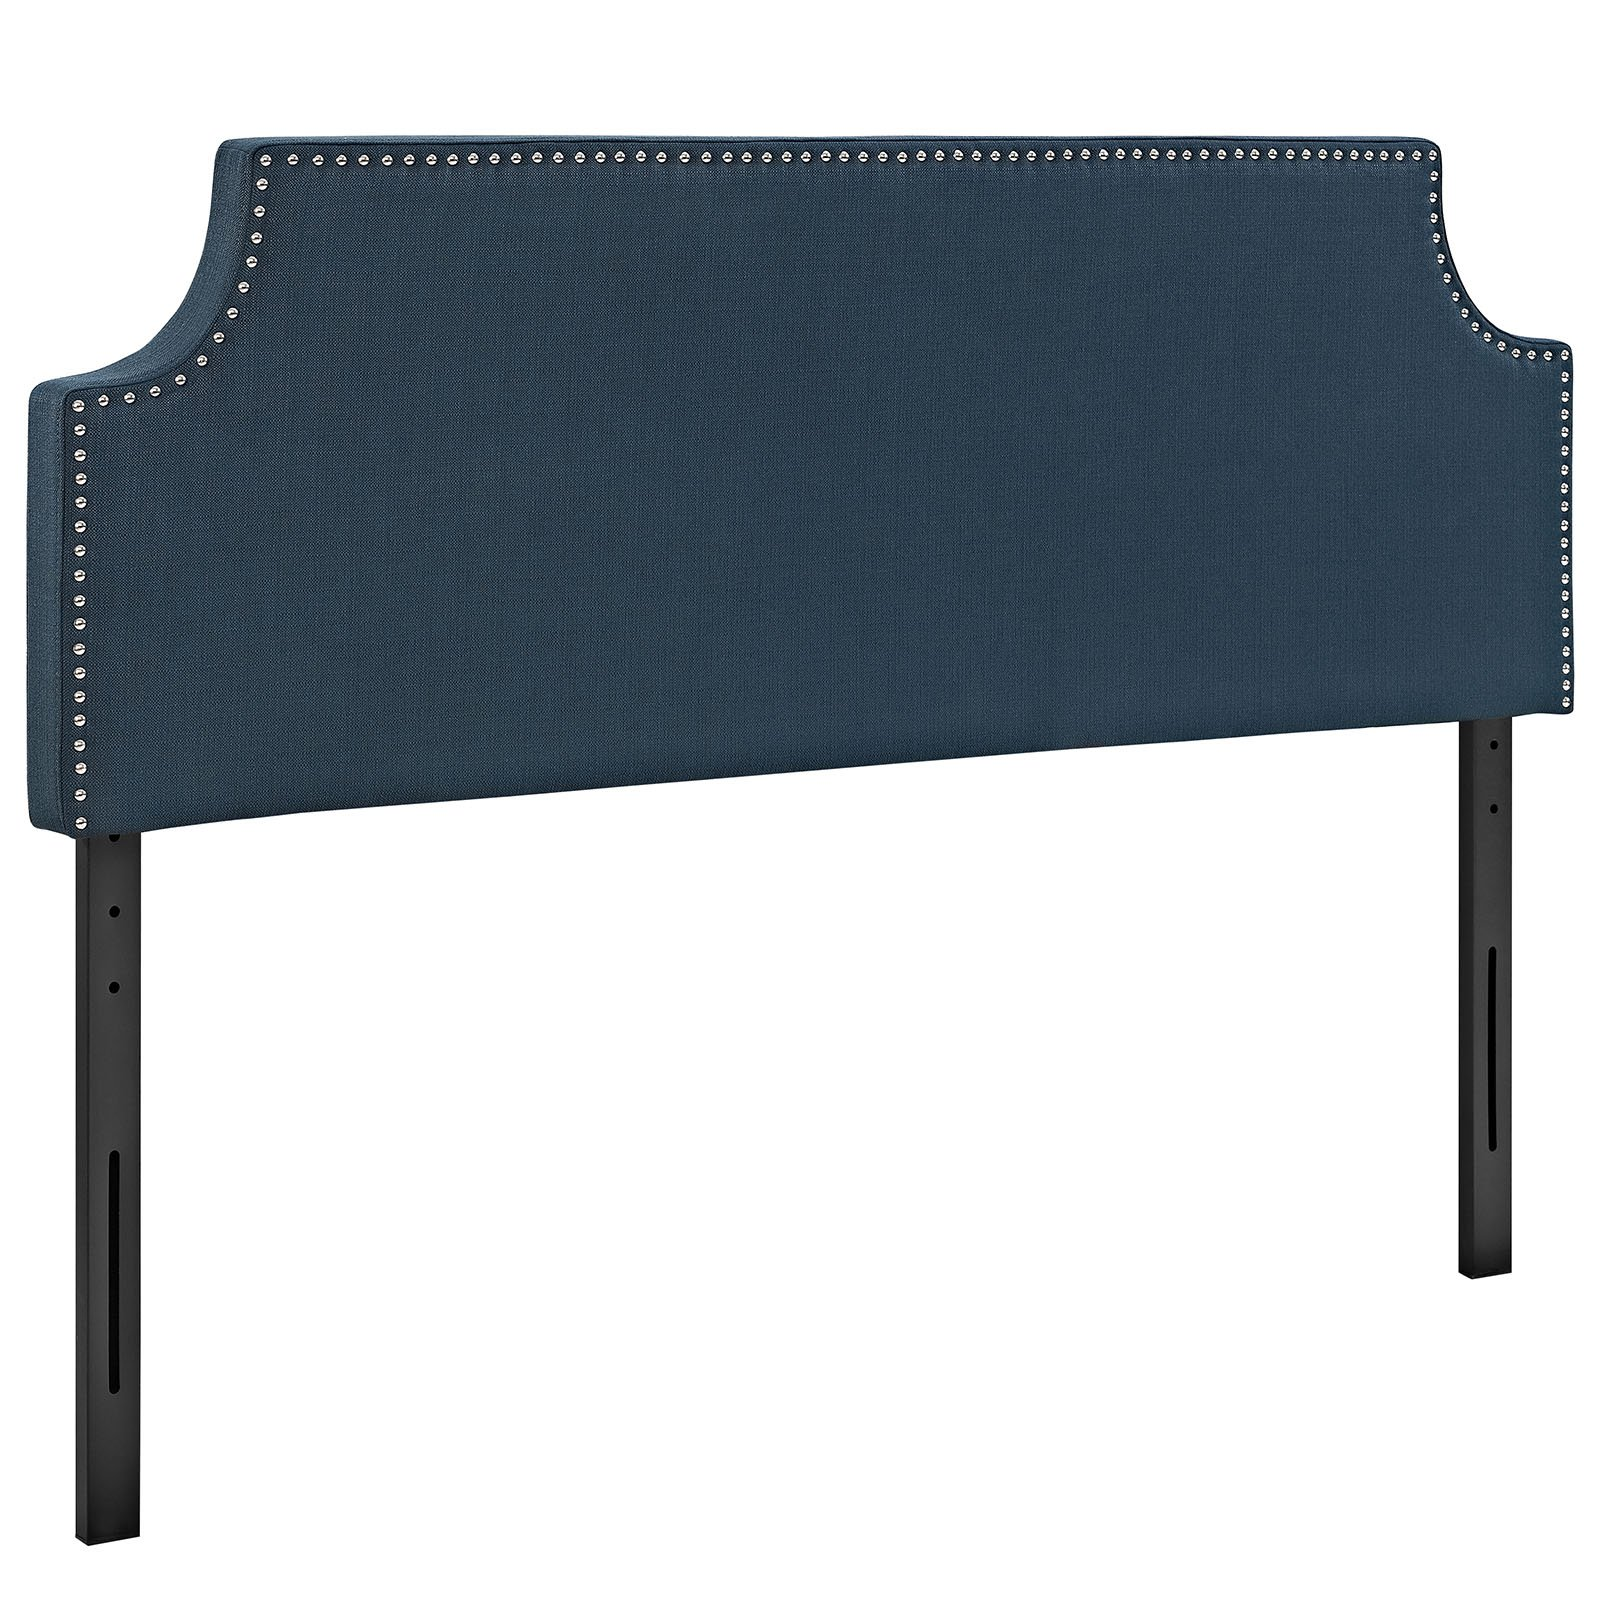 Modway Laura Upholstered Fabric Headboard Full Size with Cut-Out Edges and Nailhead Trim in Azure